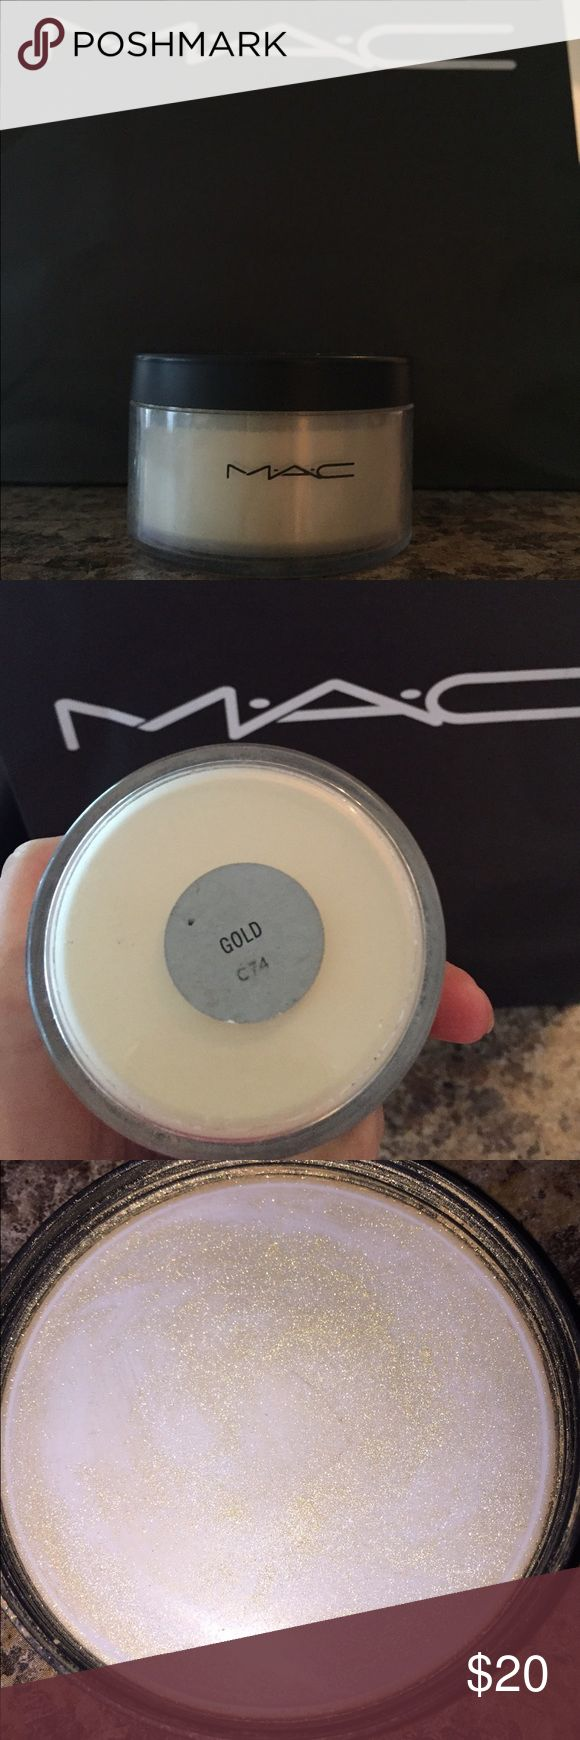 """MAC C74 """"GOLD"""" highlighter... This is the Mac Pro gold highlighter. Can only be purchased at a pro location. I bought it thinking it would work to replace my copper highlighter. But it doesn't. Selling for a very fair price. It has only been tested. MAC Cosmetics Makeup Luminizer"""